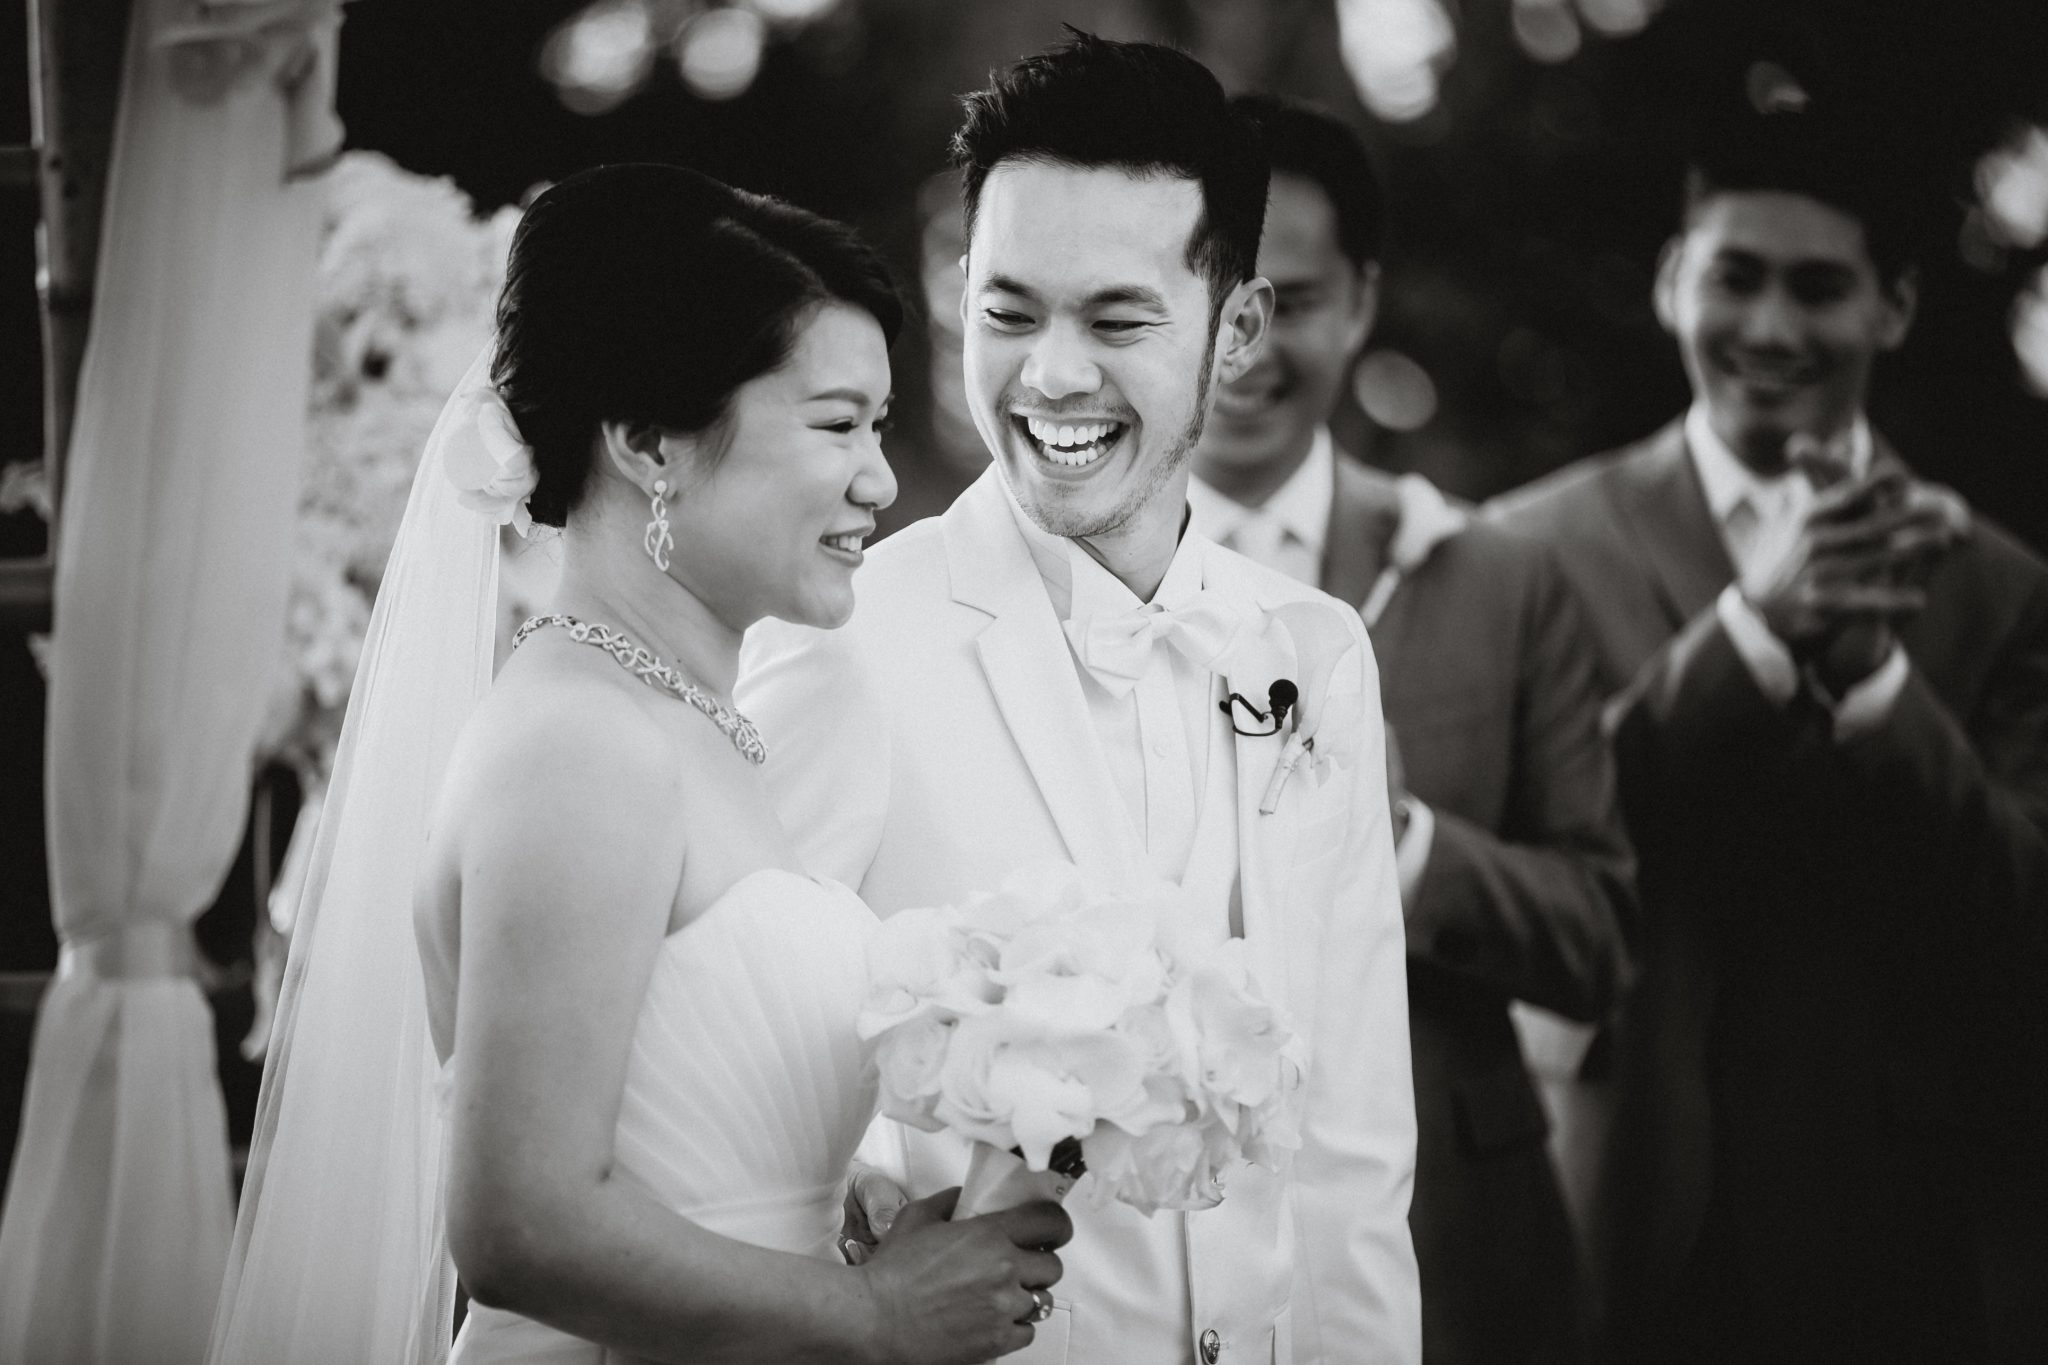 Groom smiles and laughs during the ceremony